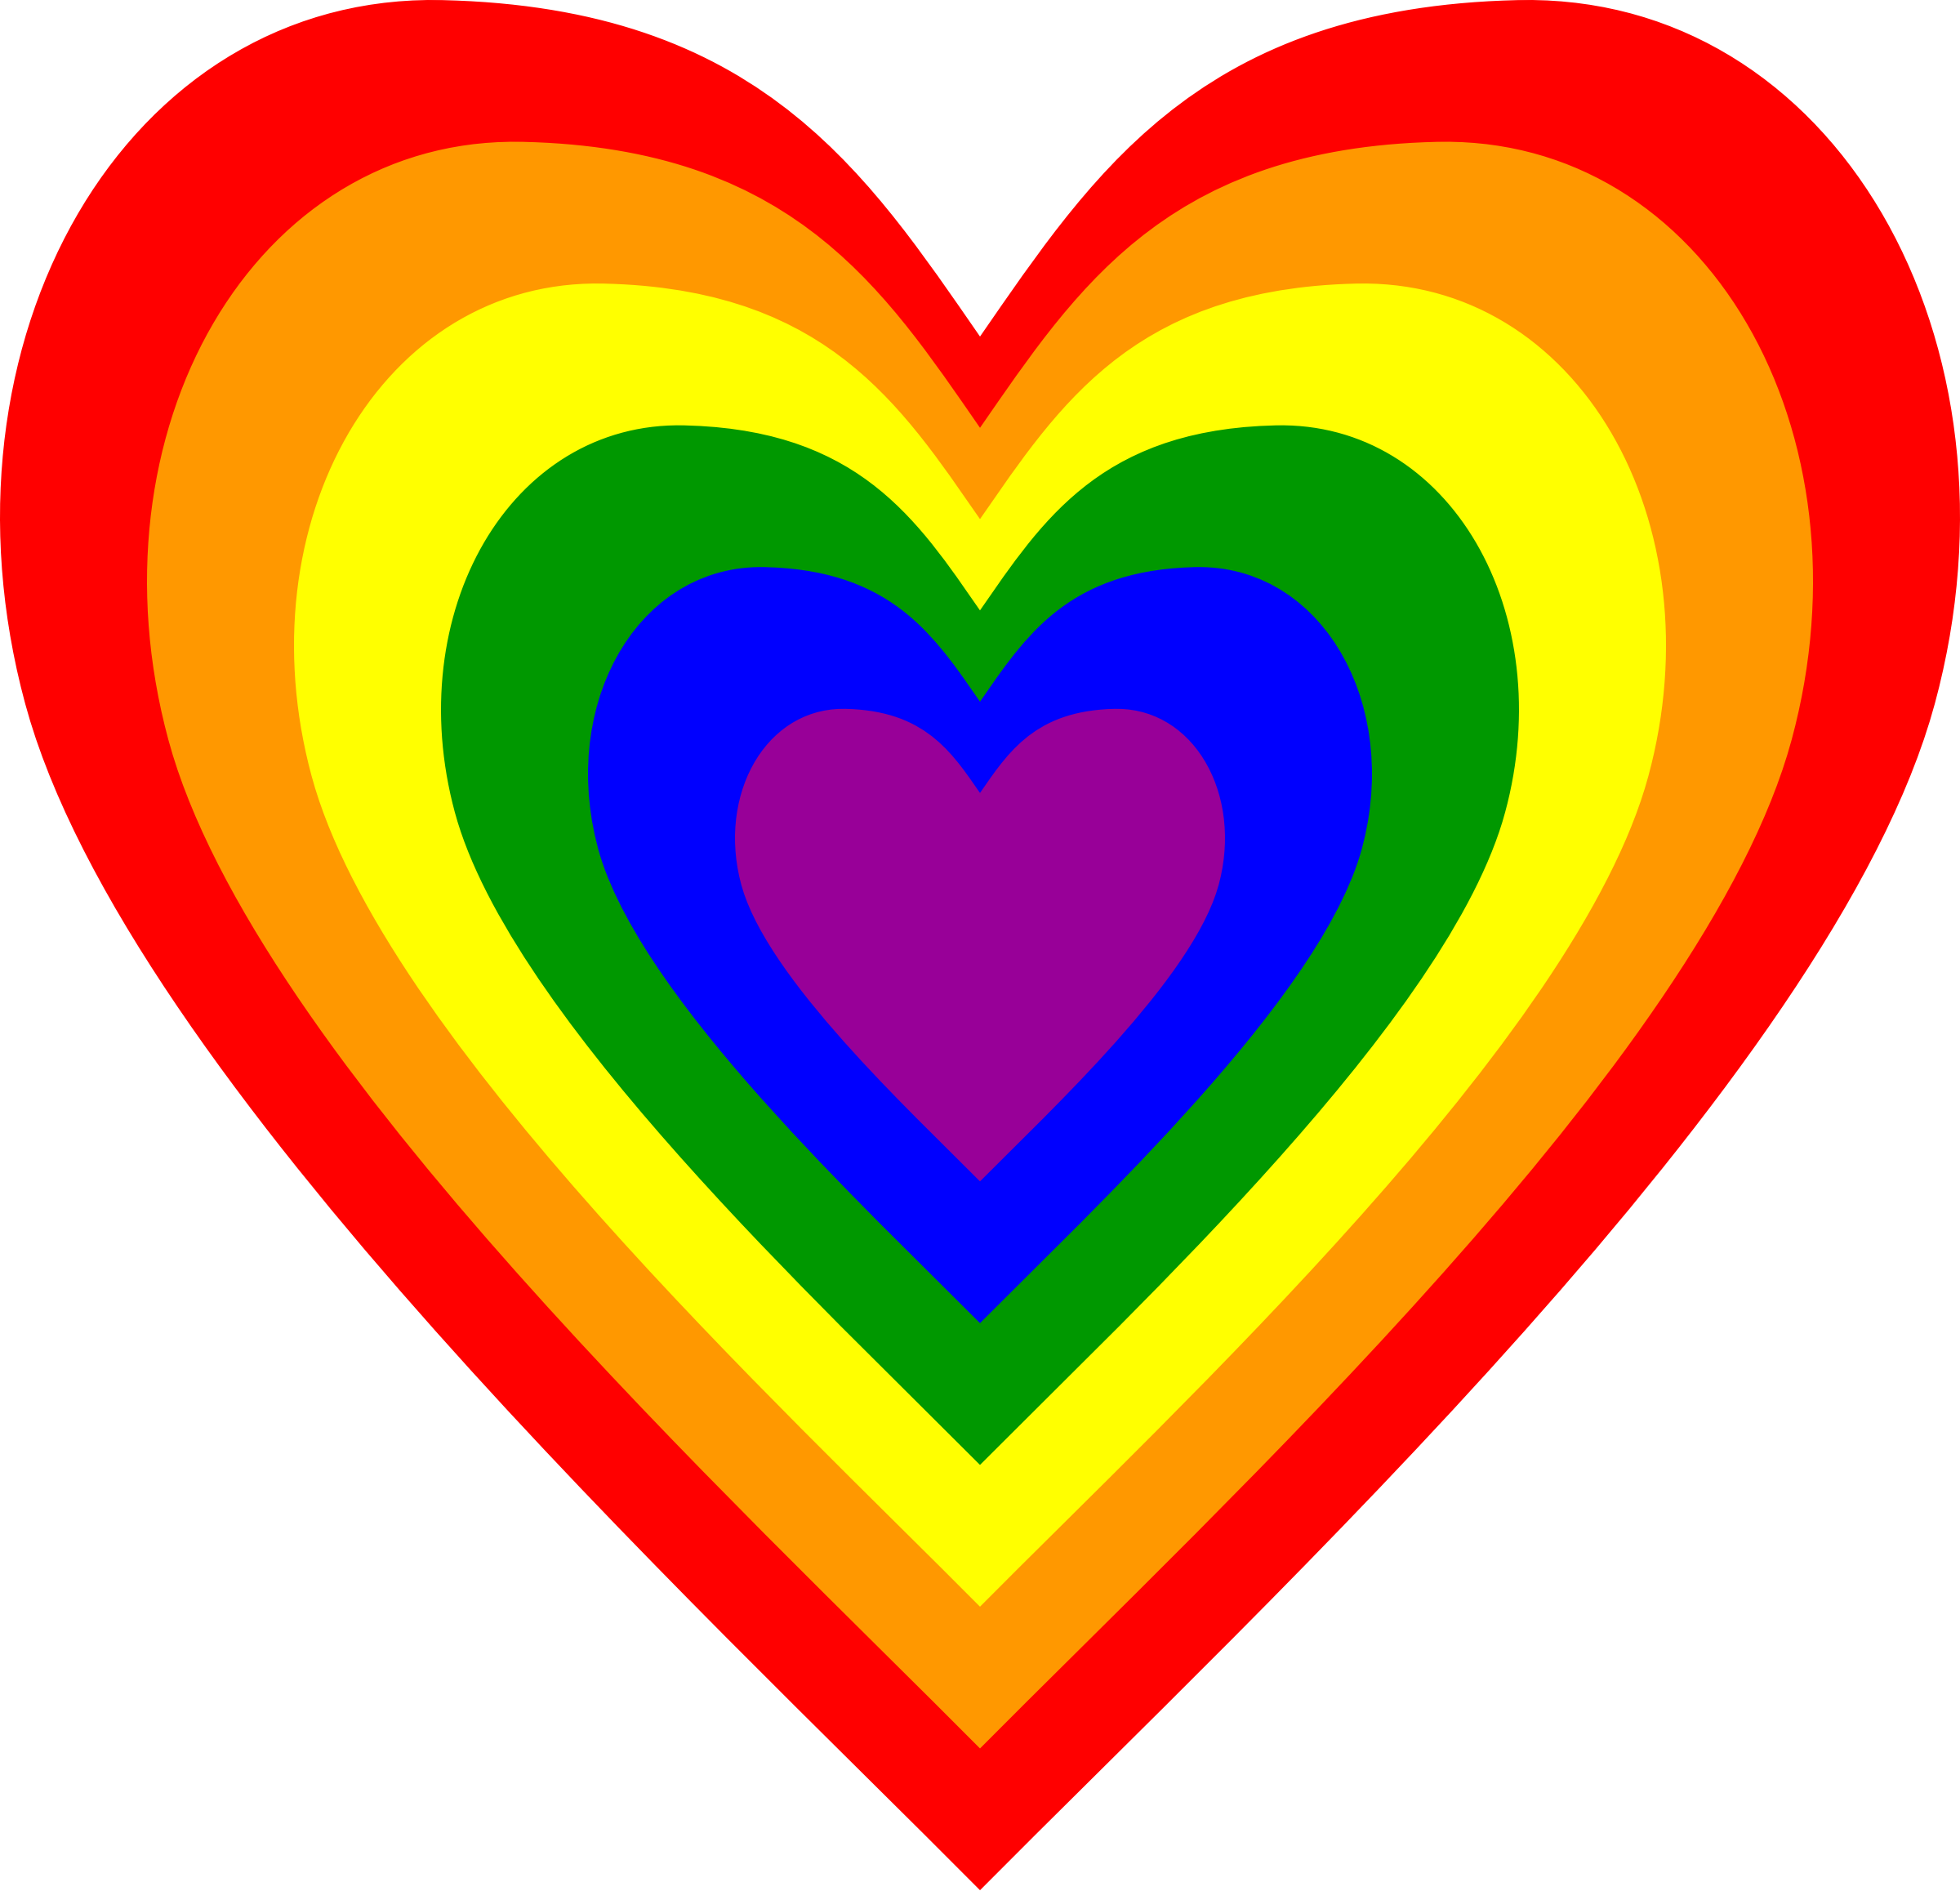 Lgbt heart clipart png free 28+ Collection of Rainbow Heart Clipart | High quality, free ... png free